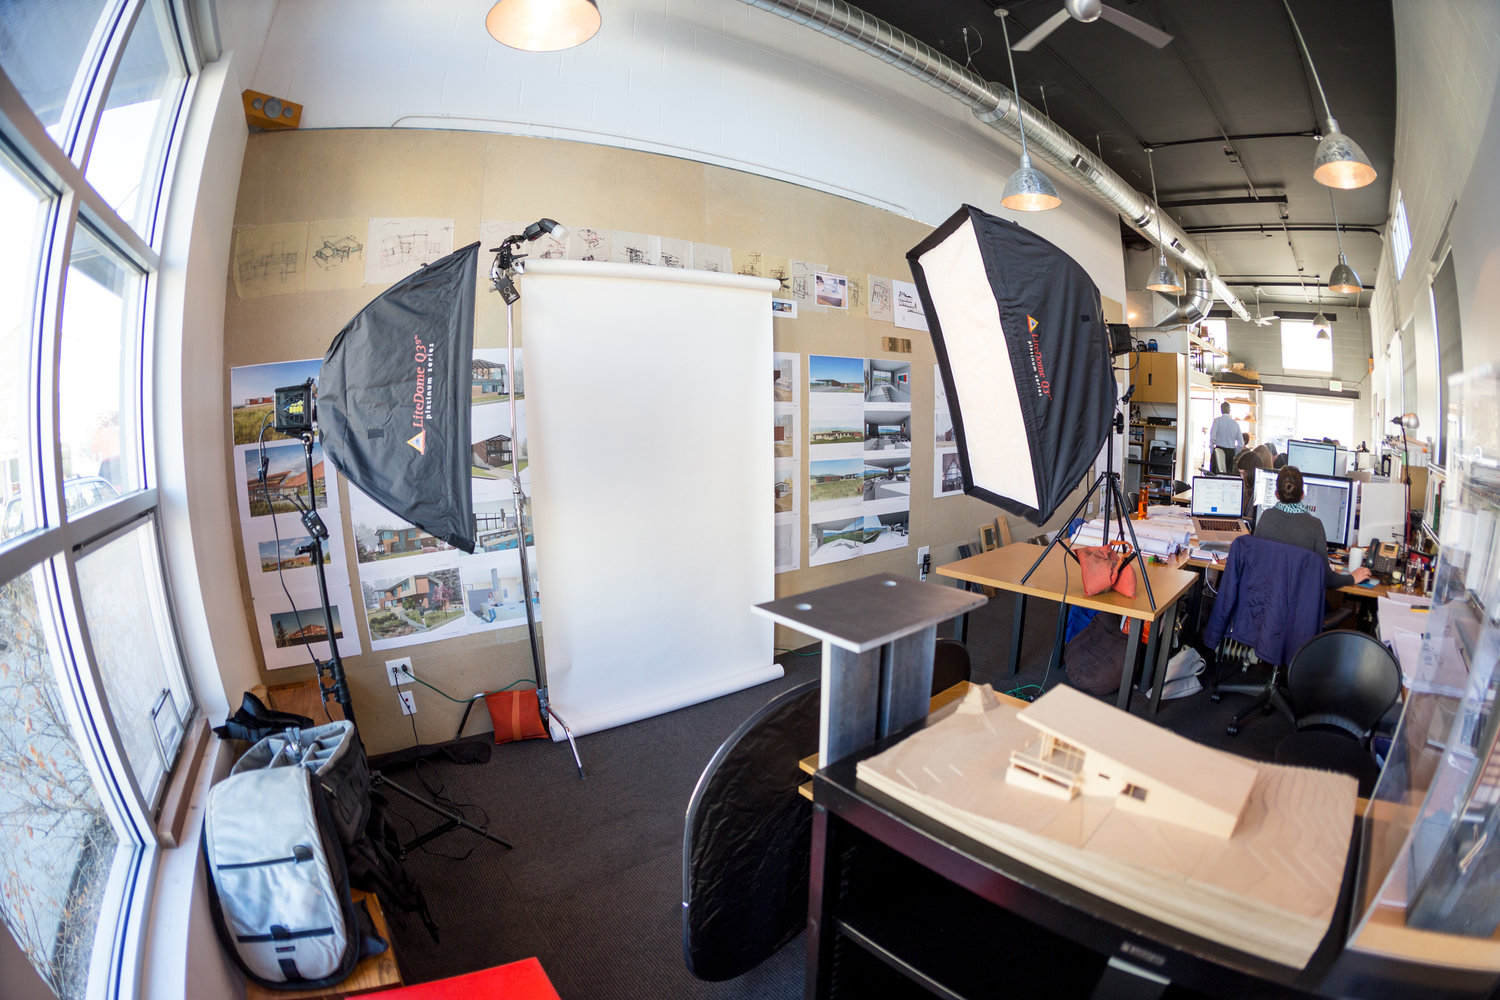 commercial advertising editorial photography video production for agencies businesses and organizations - Photographing Interiors